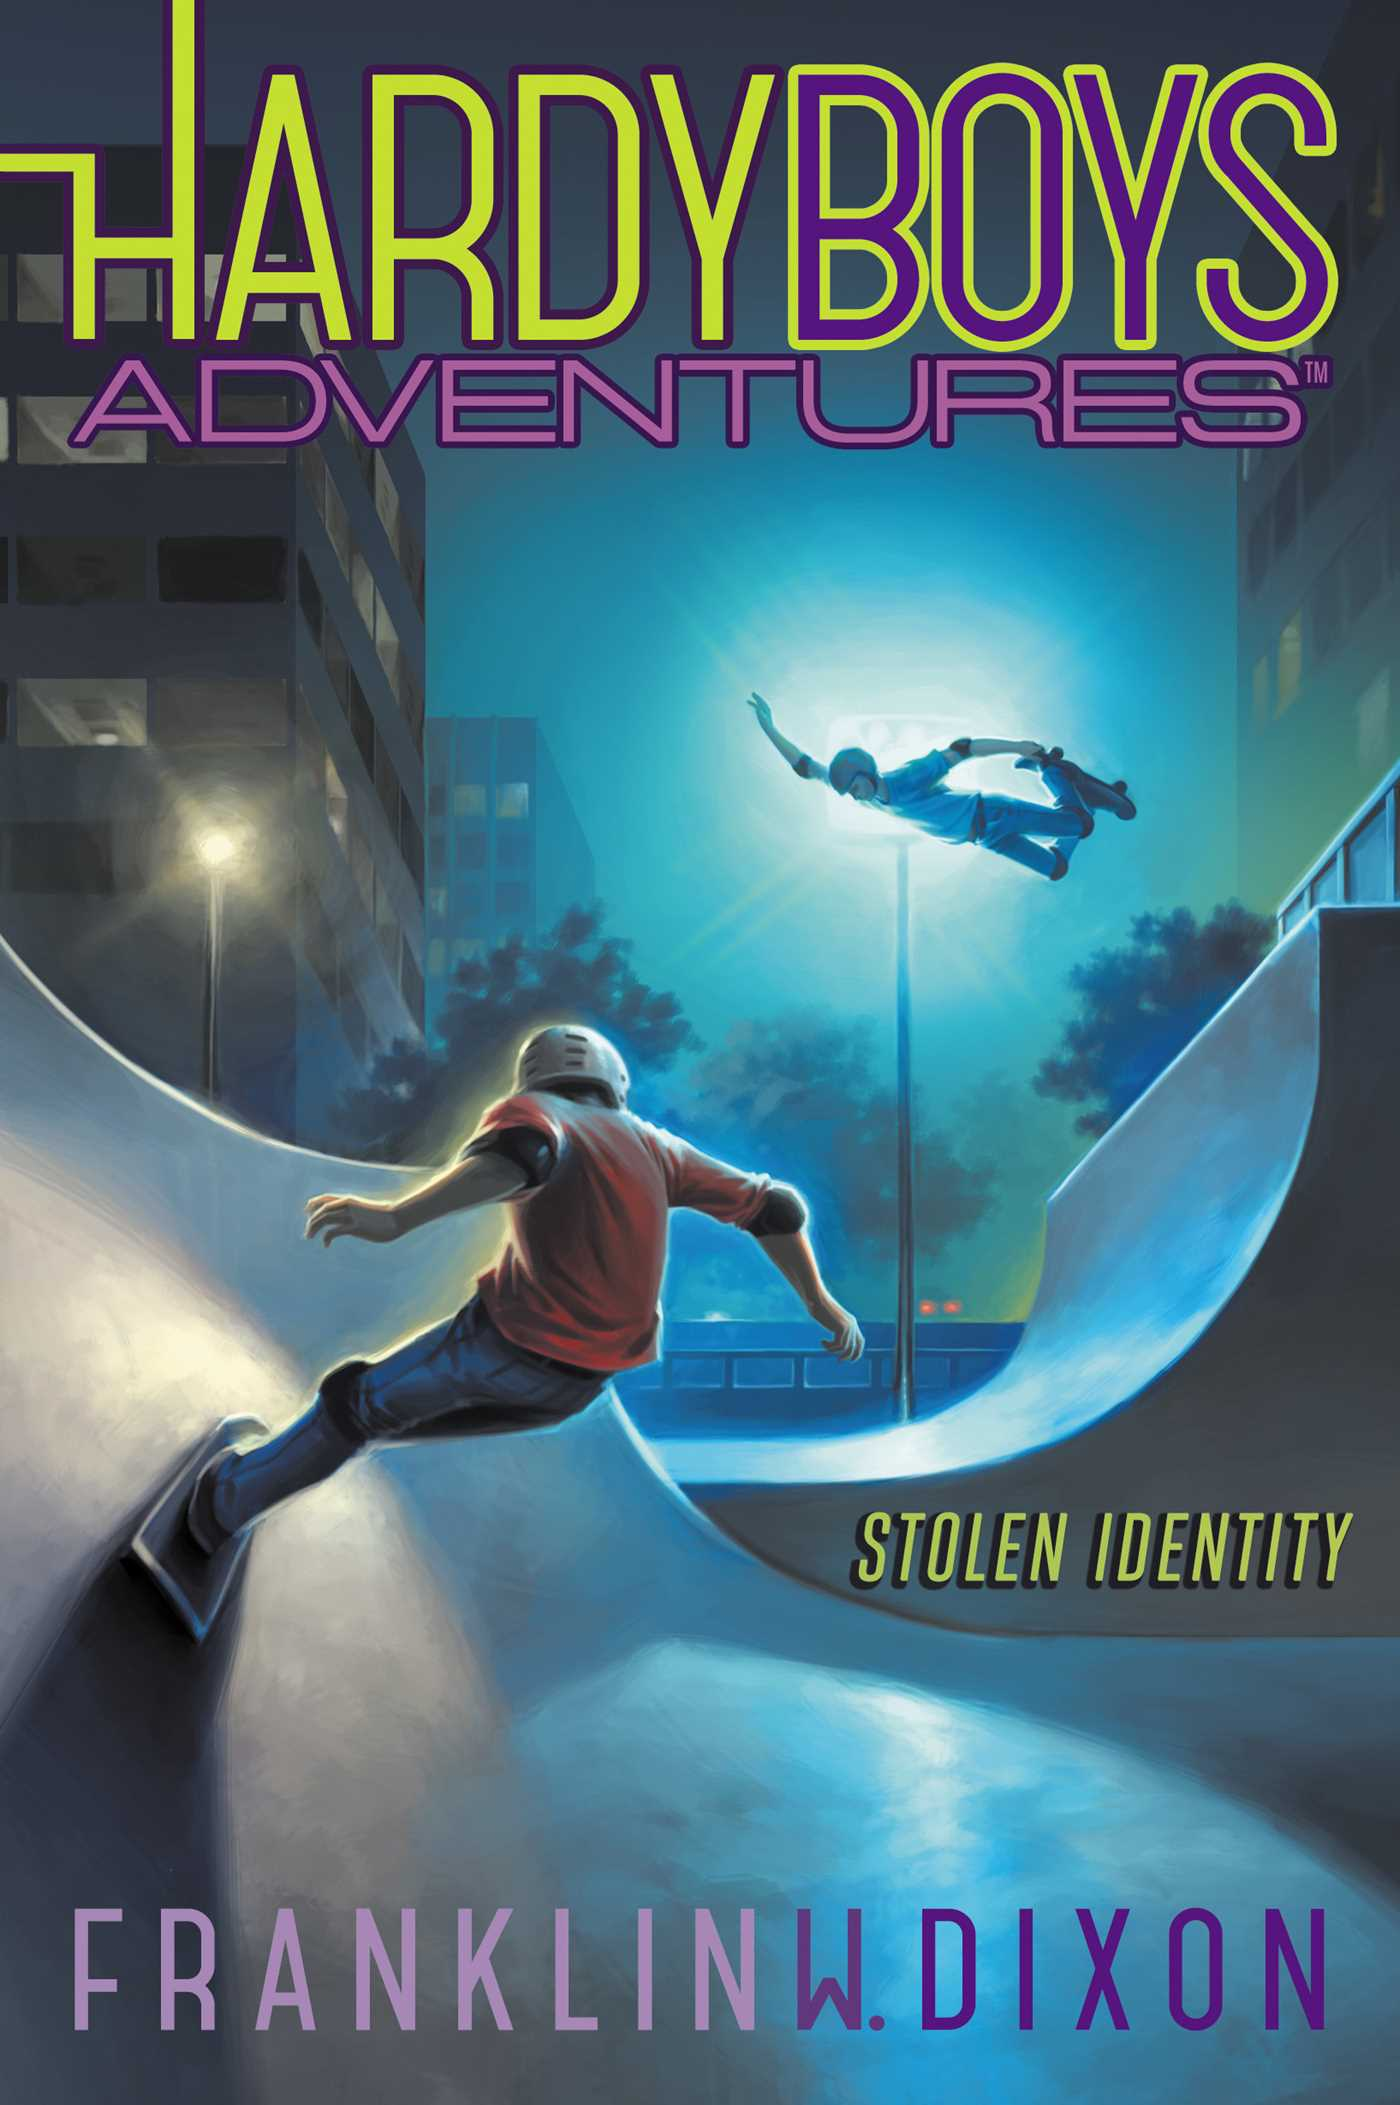 Hardy Boys Adventures #16 Stolen Identity – Cover Art and Details